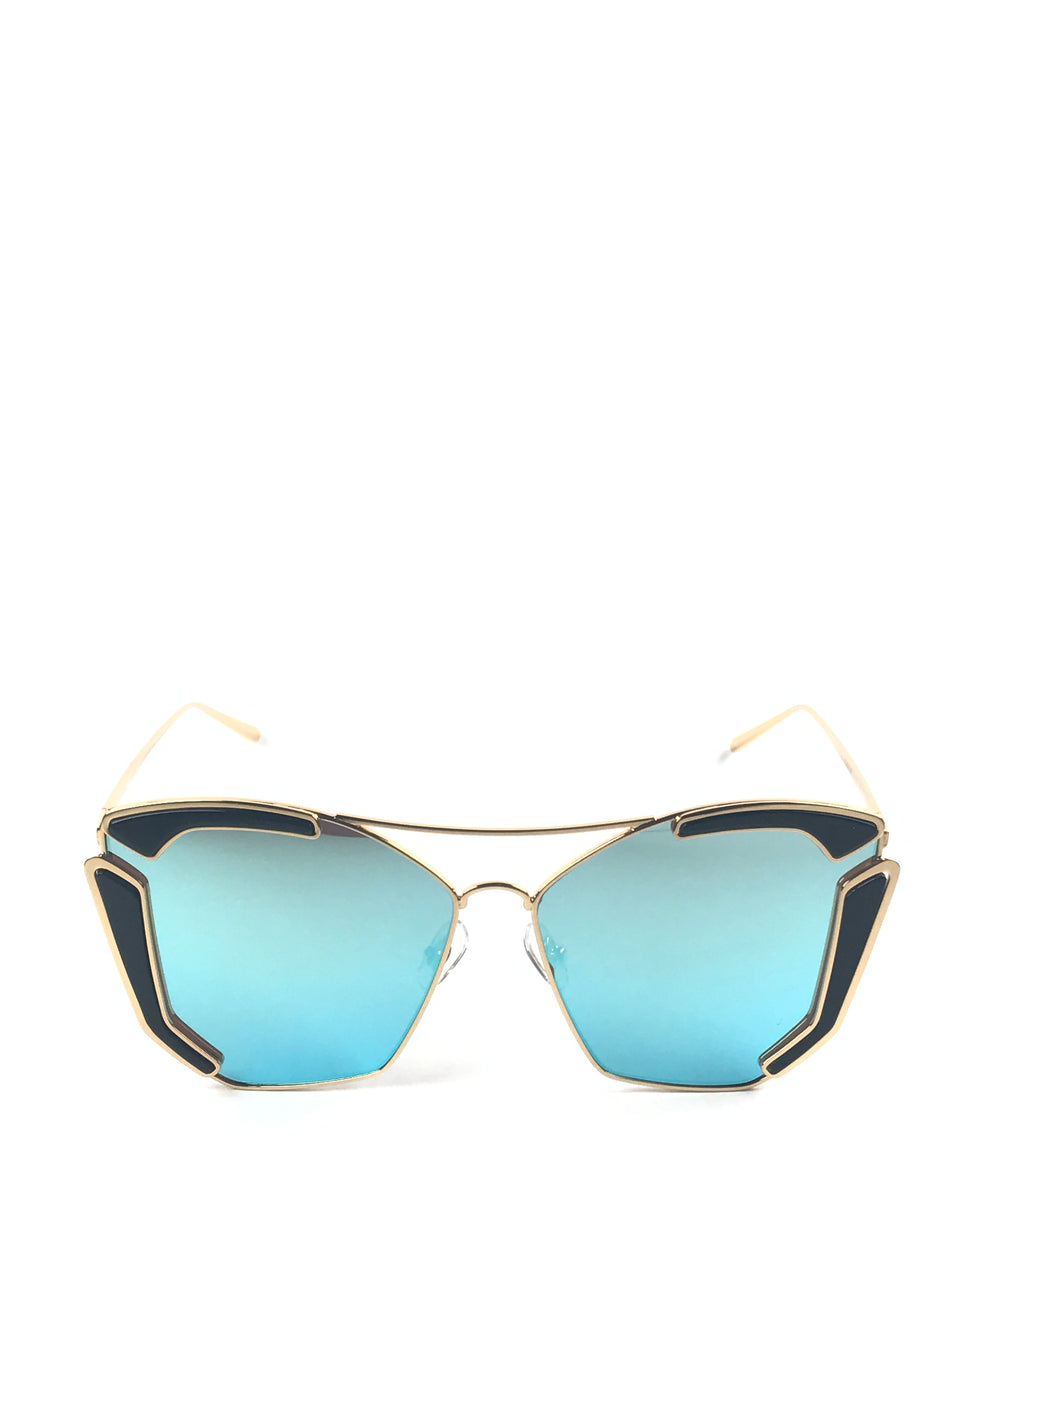 G7 Blue Sunglasses